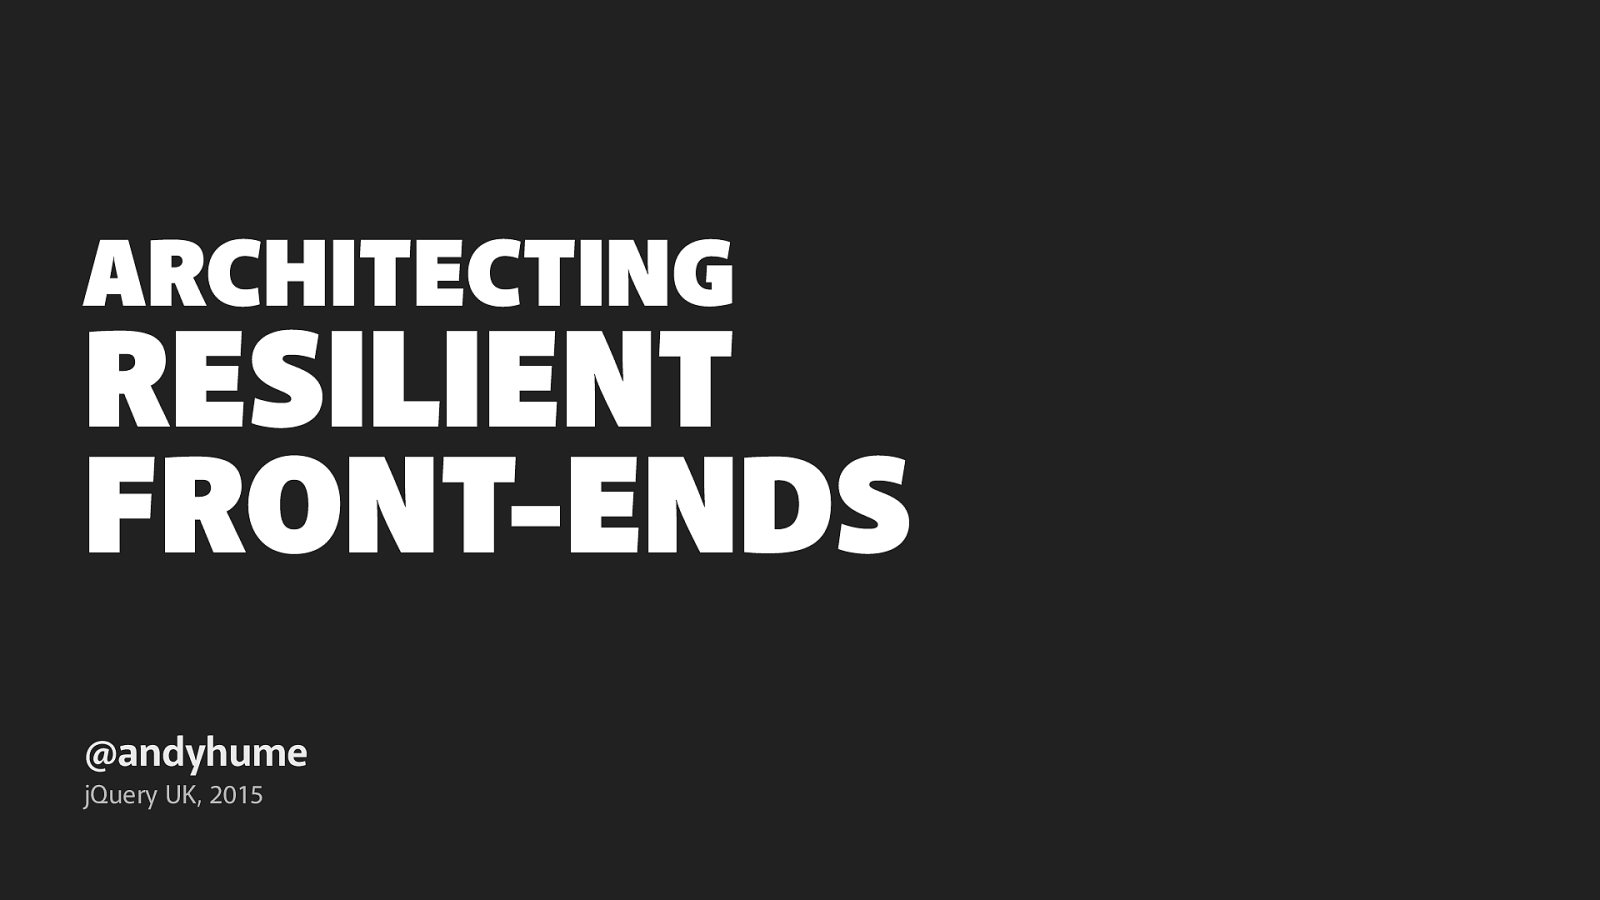 Architecting Resilient Frontends